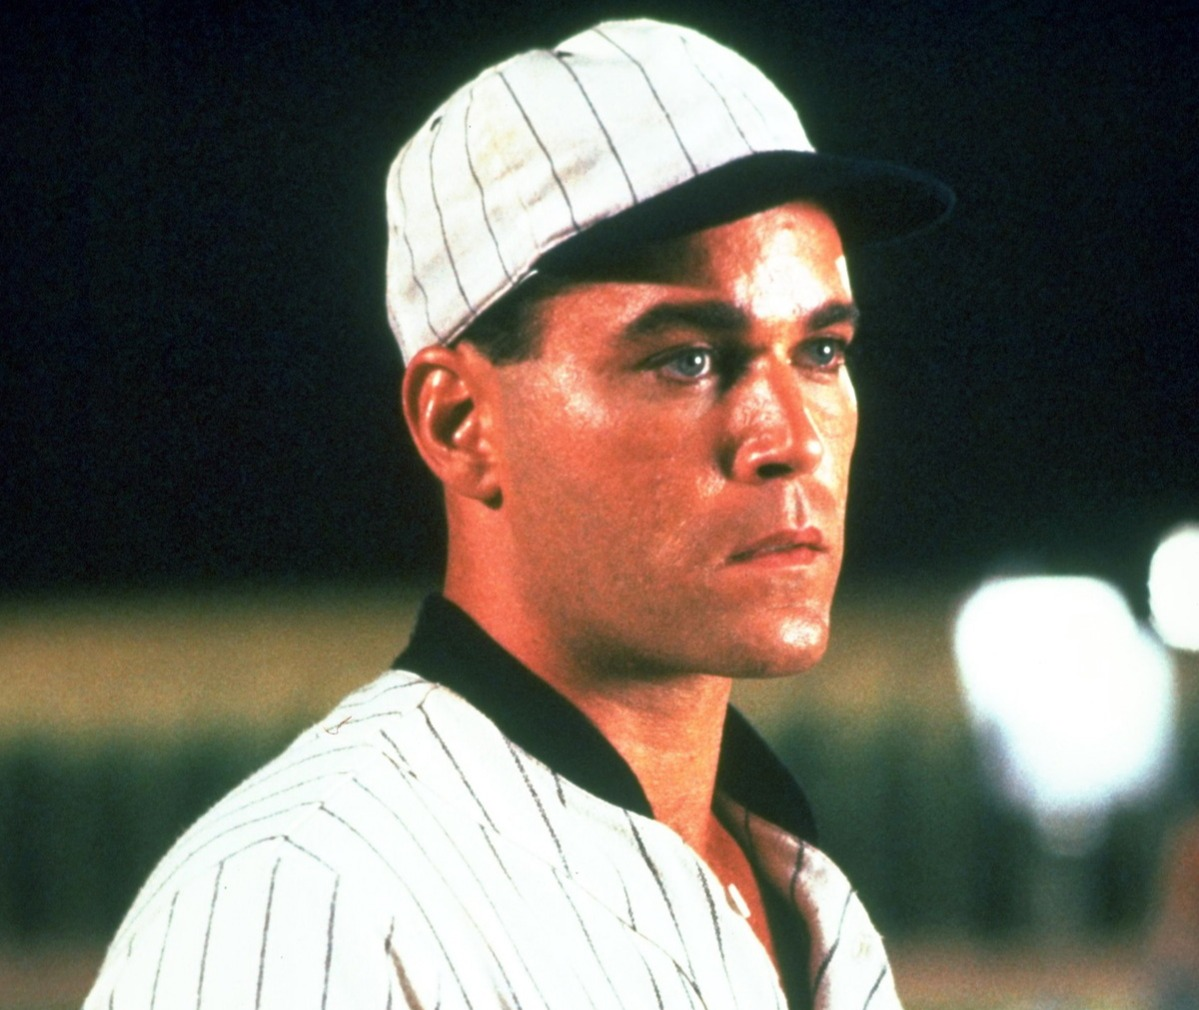 ray liotta couldnt hit left and throw right like shoeless joe